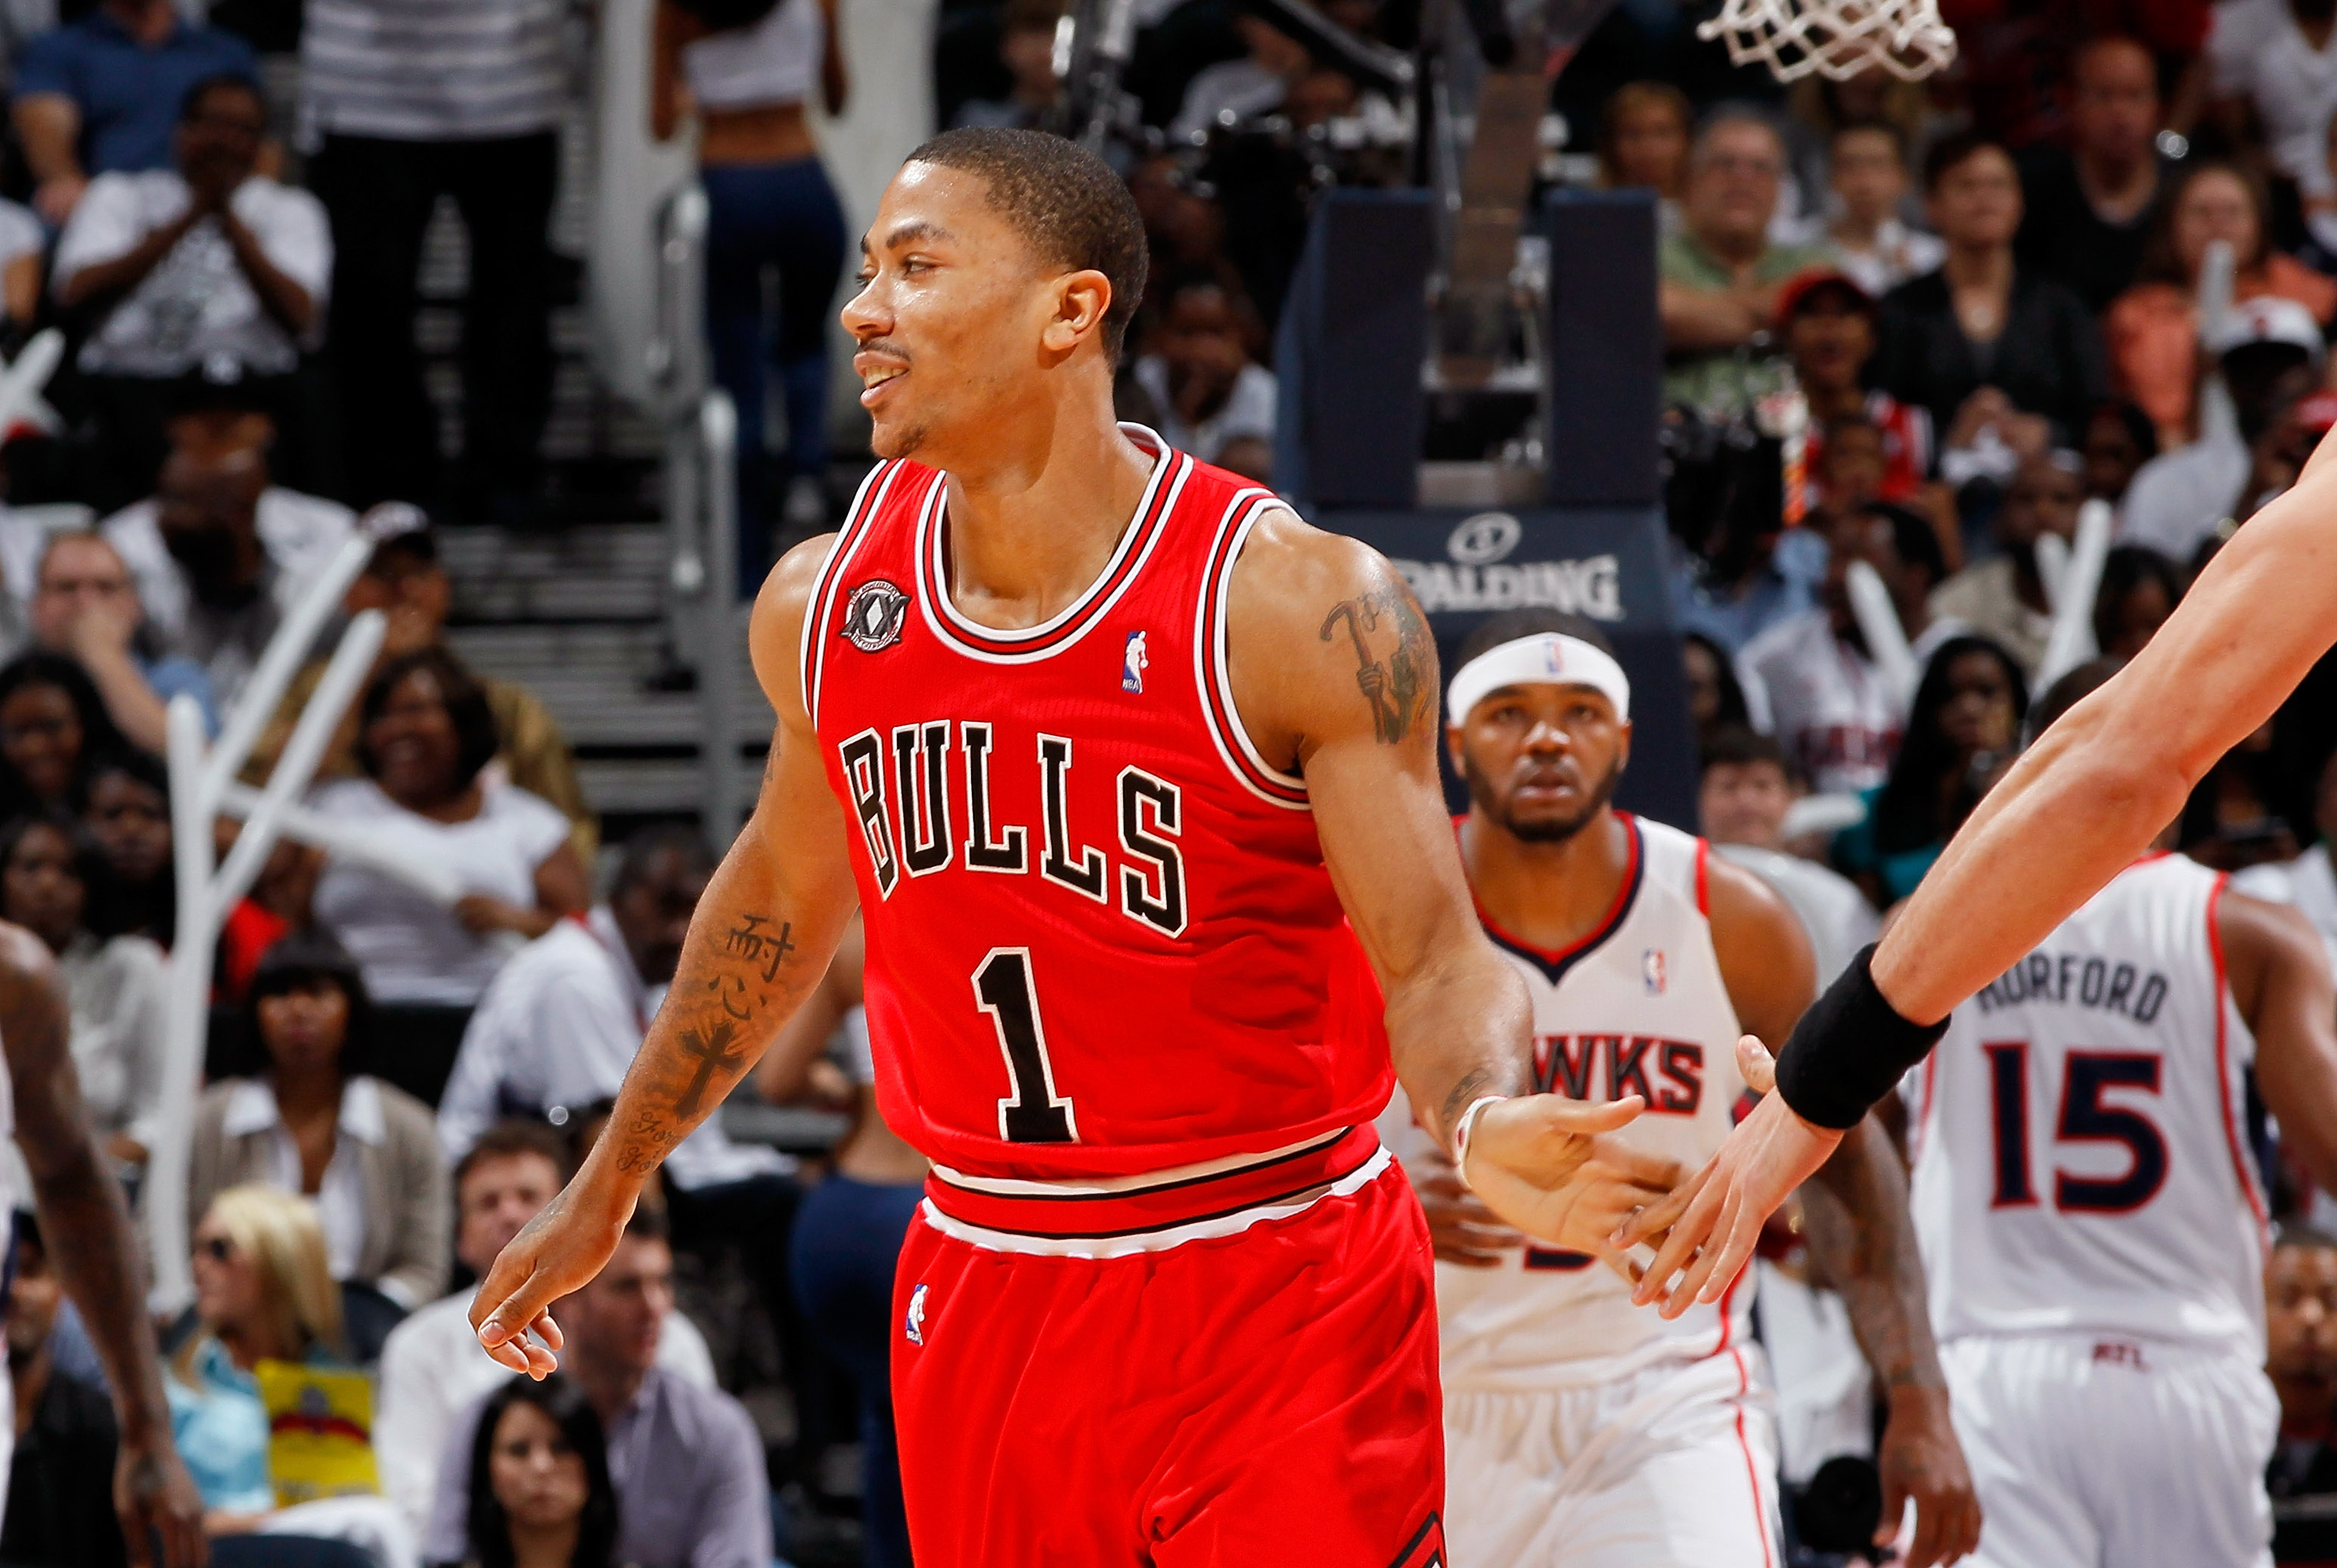 ATLANTA, GA - MAY 06:  Derrick Rose #1 of the Chicago Bulls reacts after hitting a three-point basket against the Atlanta Hawks in Game Three of the Eastern Conference Semifinals in the 2011 NBA Playoffs at Phillips Arena on May 6, 2011 in Atlanta, Georgi